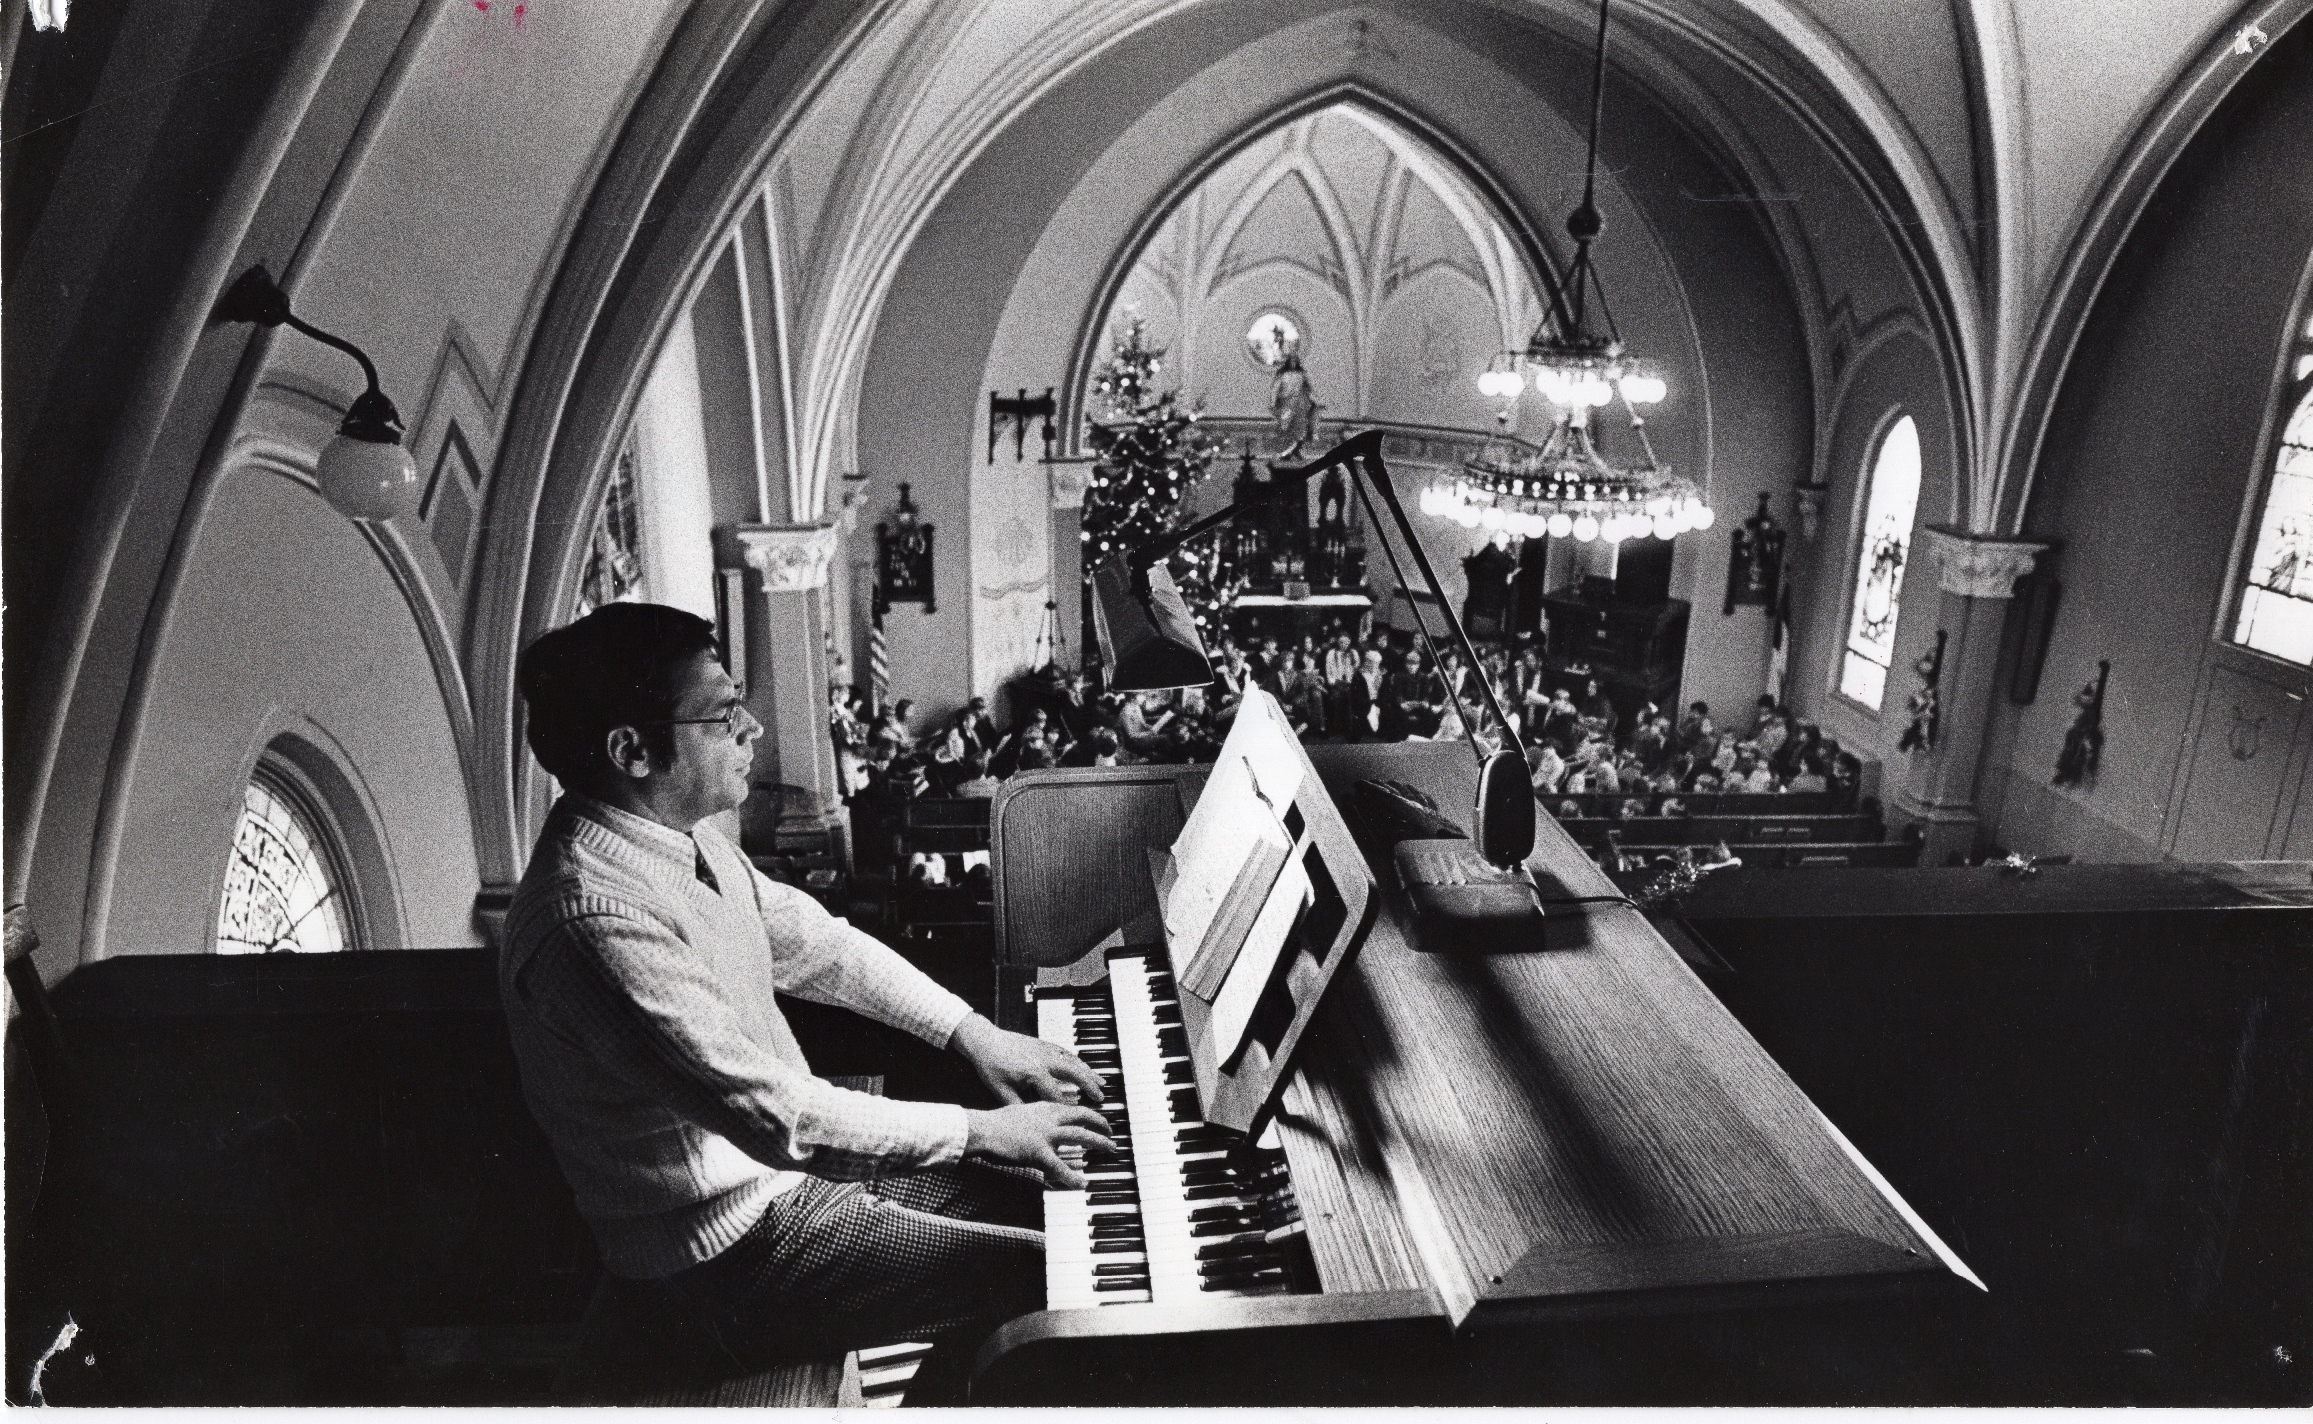 Christmas in the Madison Street church, exact year unknown.